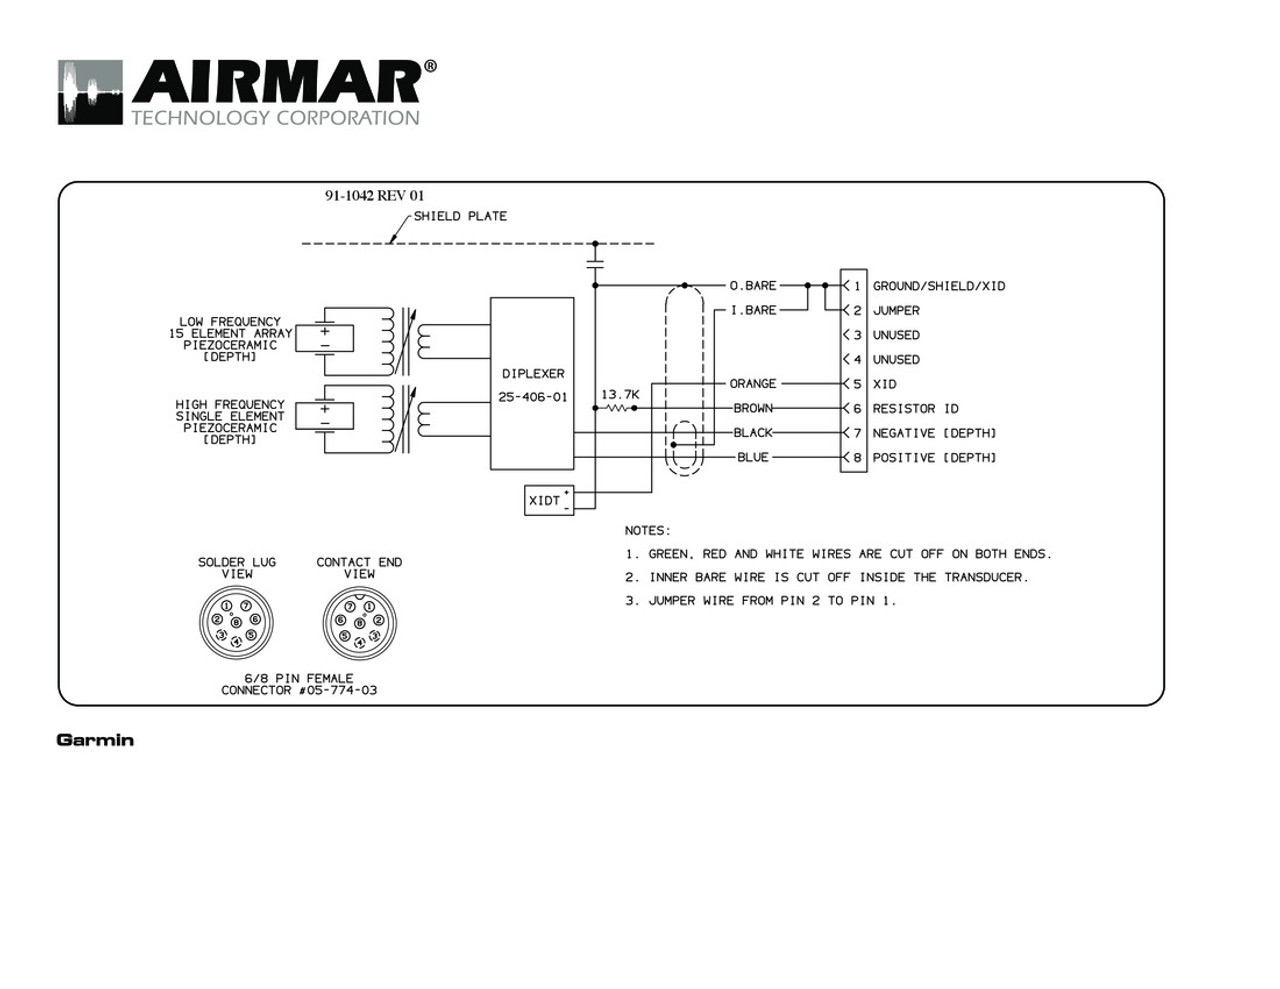 small resolution of airmar wiring diagram garmin r199 8 pin d t blue bottle marinedepth only